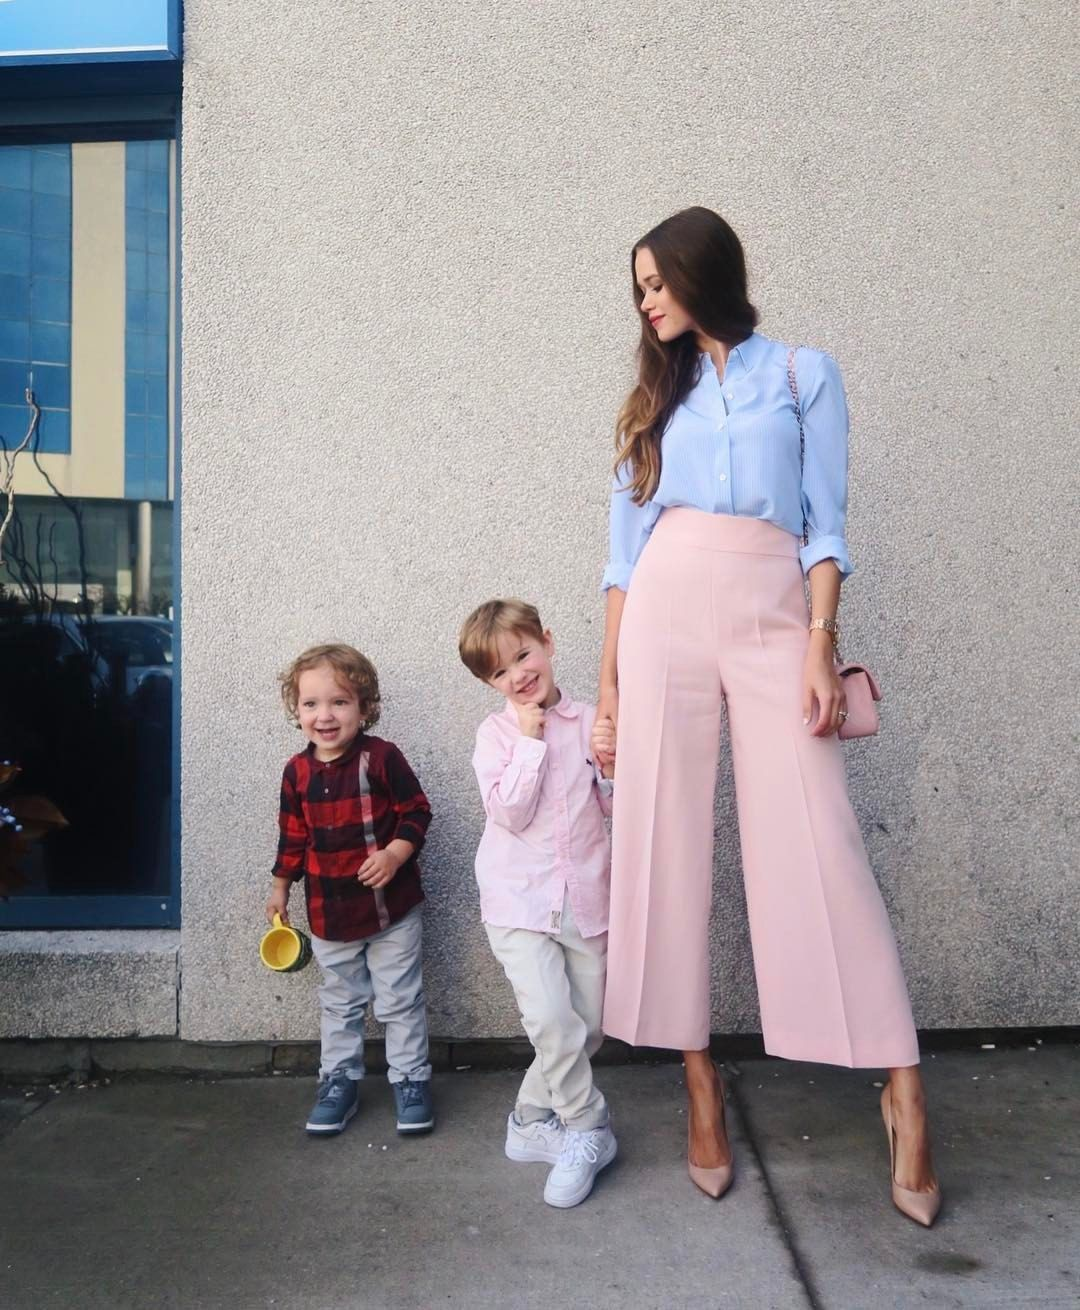 Pin by Laura Calota on Tux in 2019 | Stylish work outfits